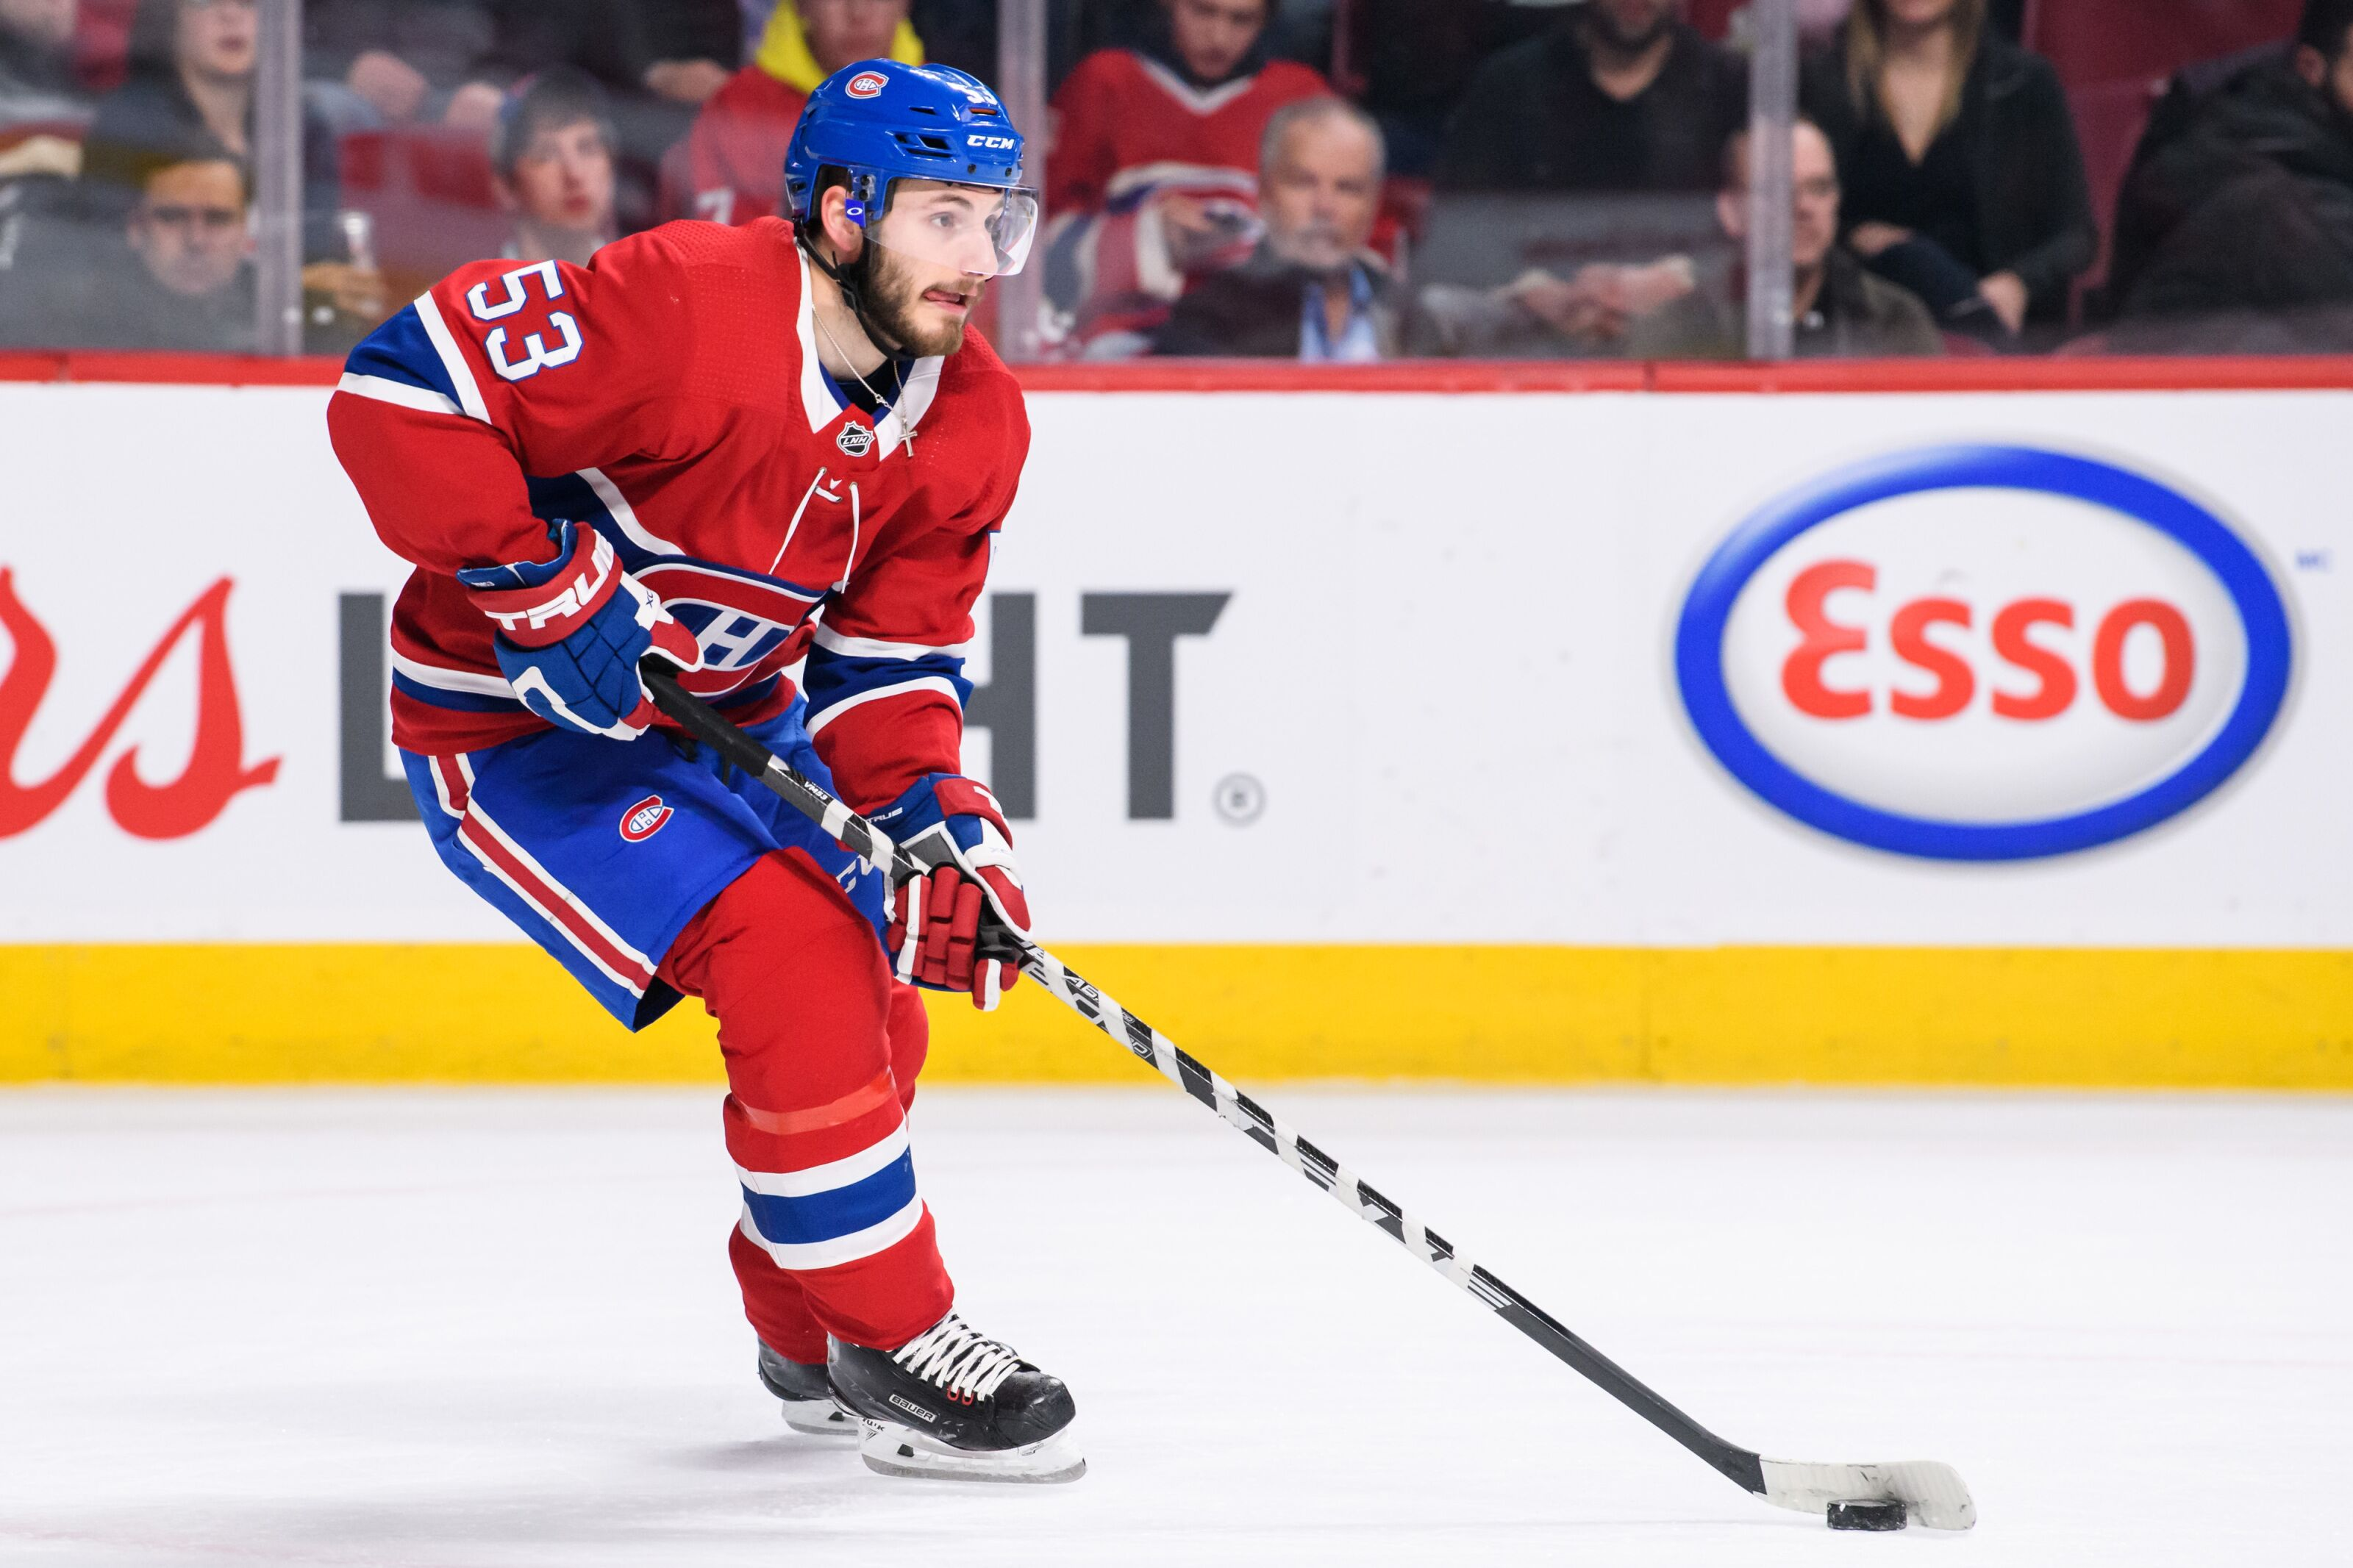 Montreal Canadiens: What Would Victor Mete Extension Look Like?